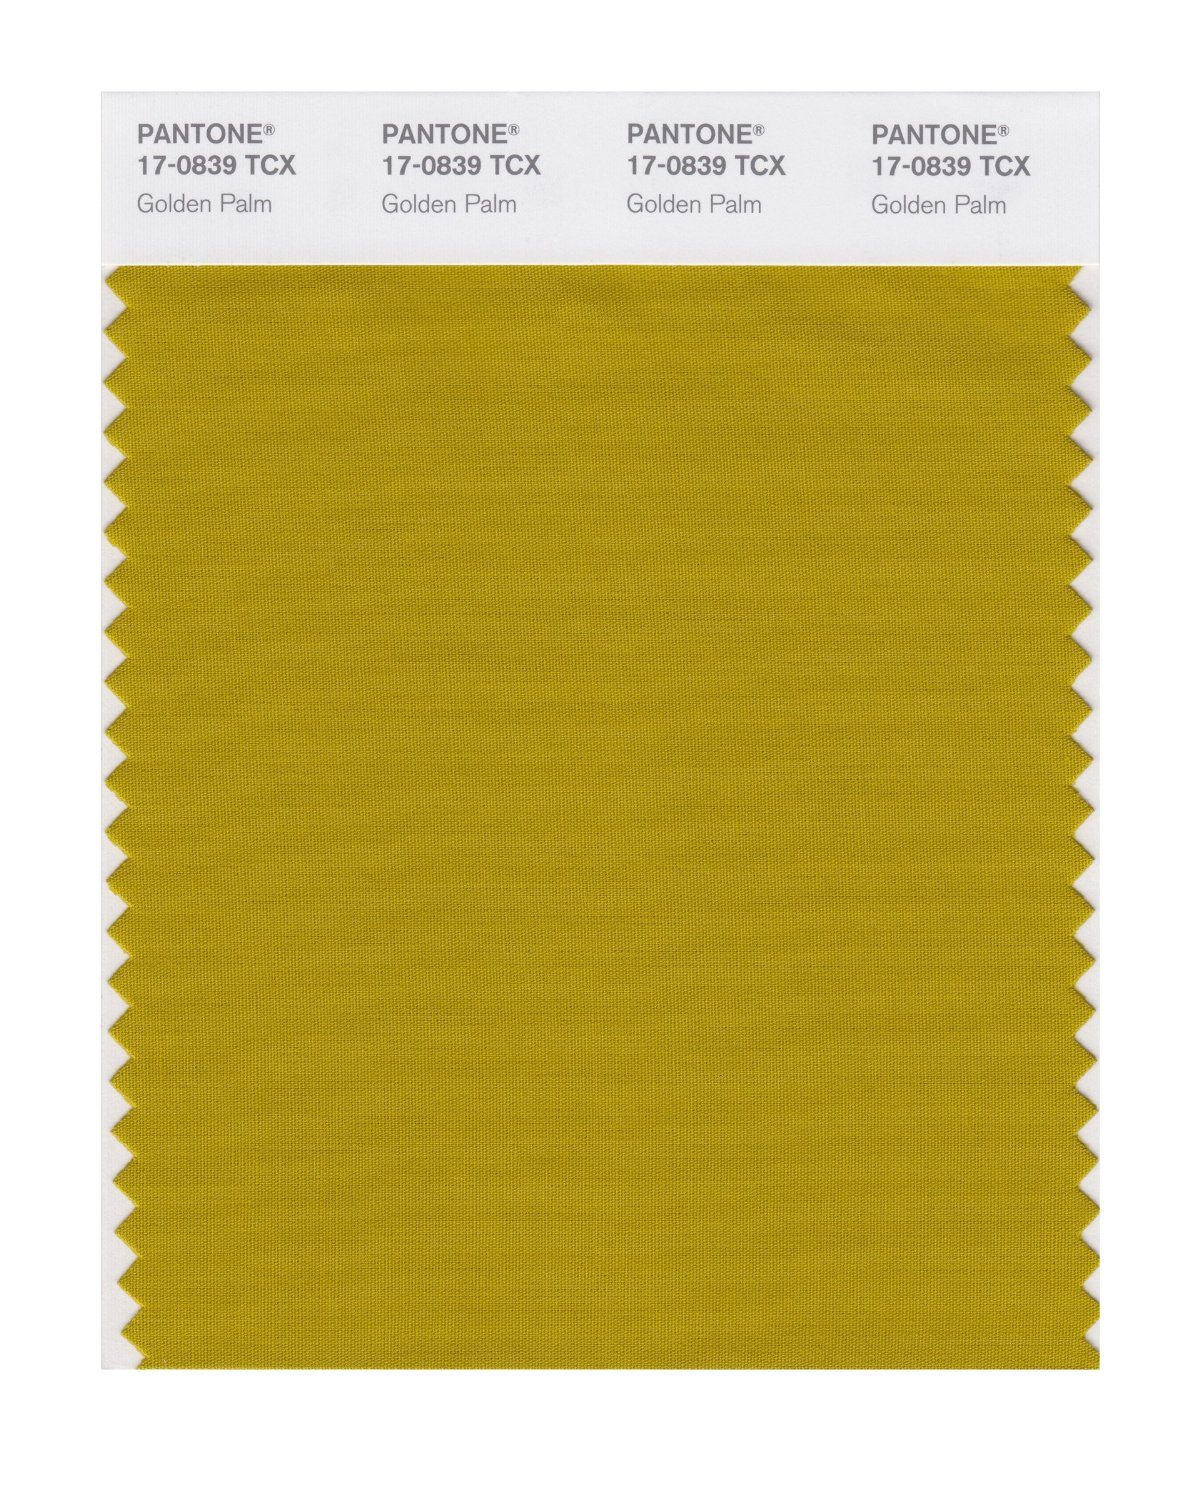 Pantone Smart Swatch 17-0839 Golden Palm